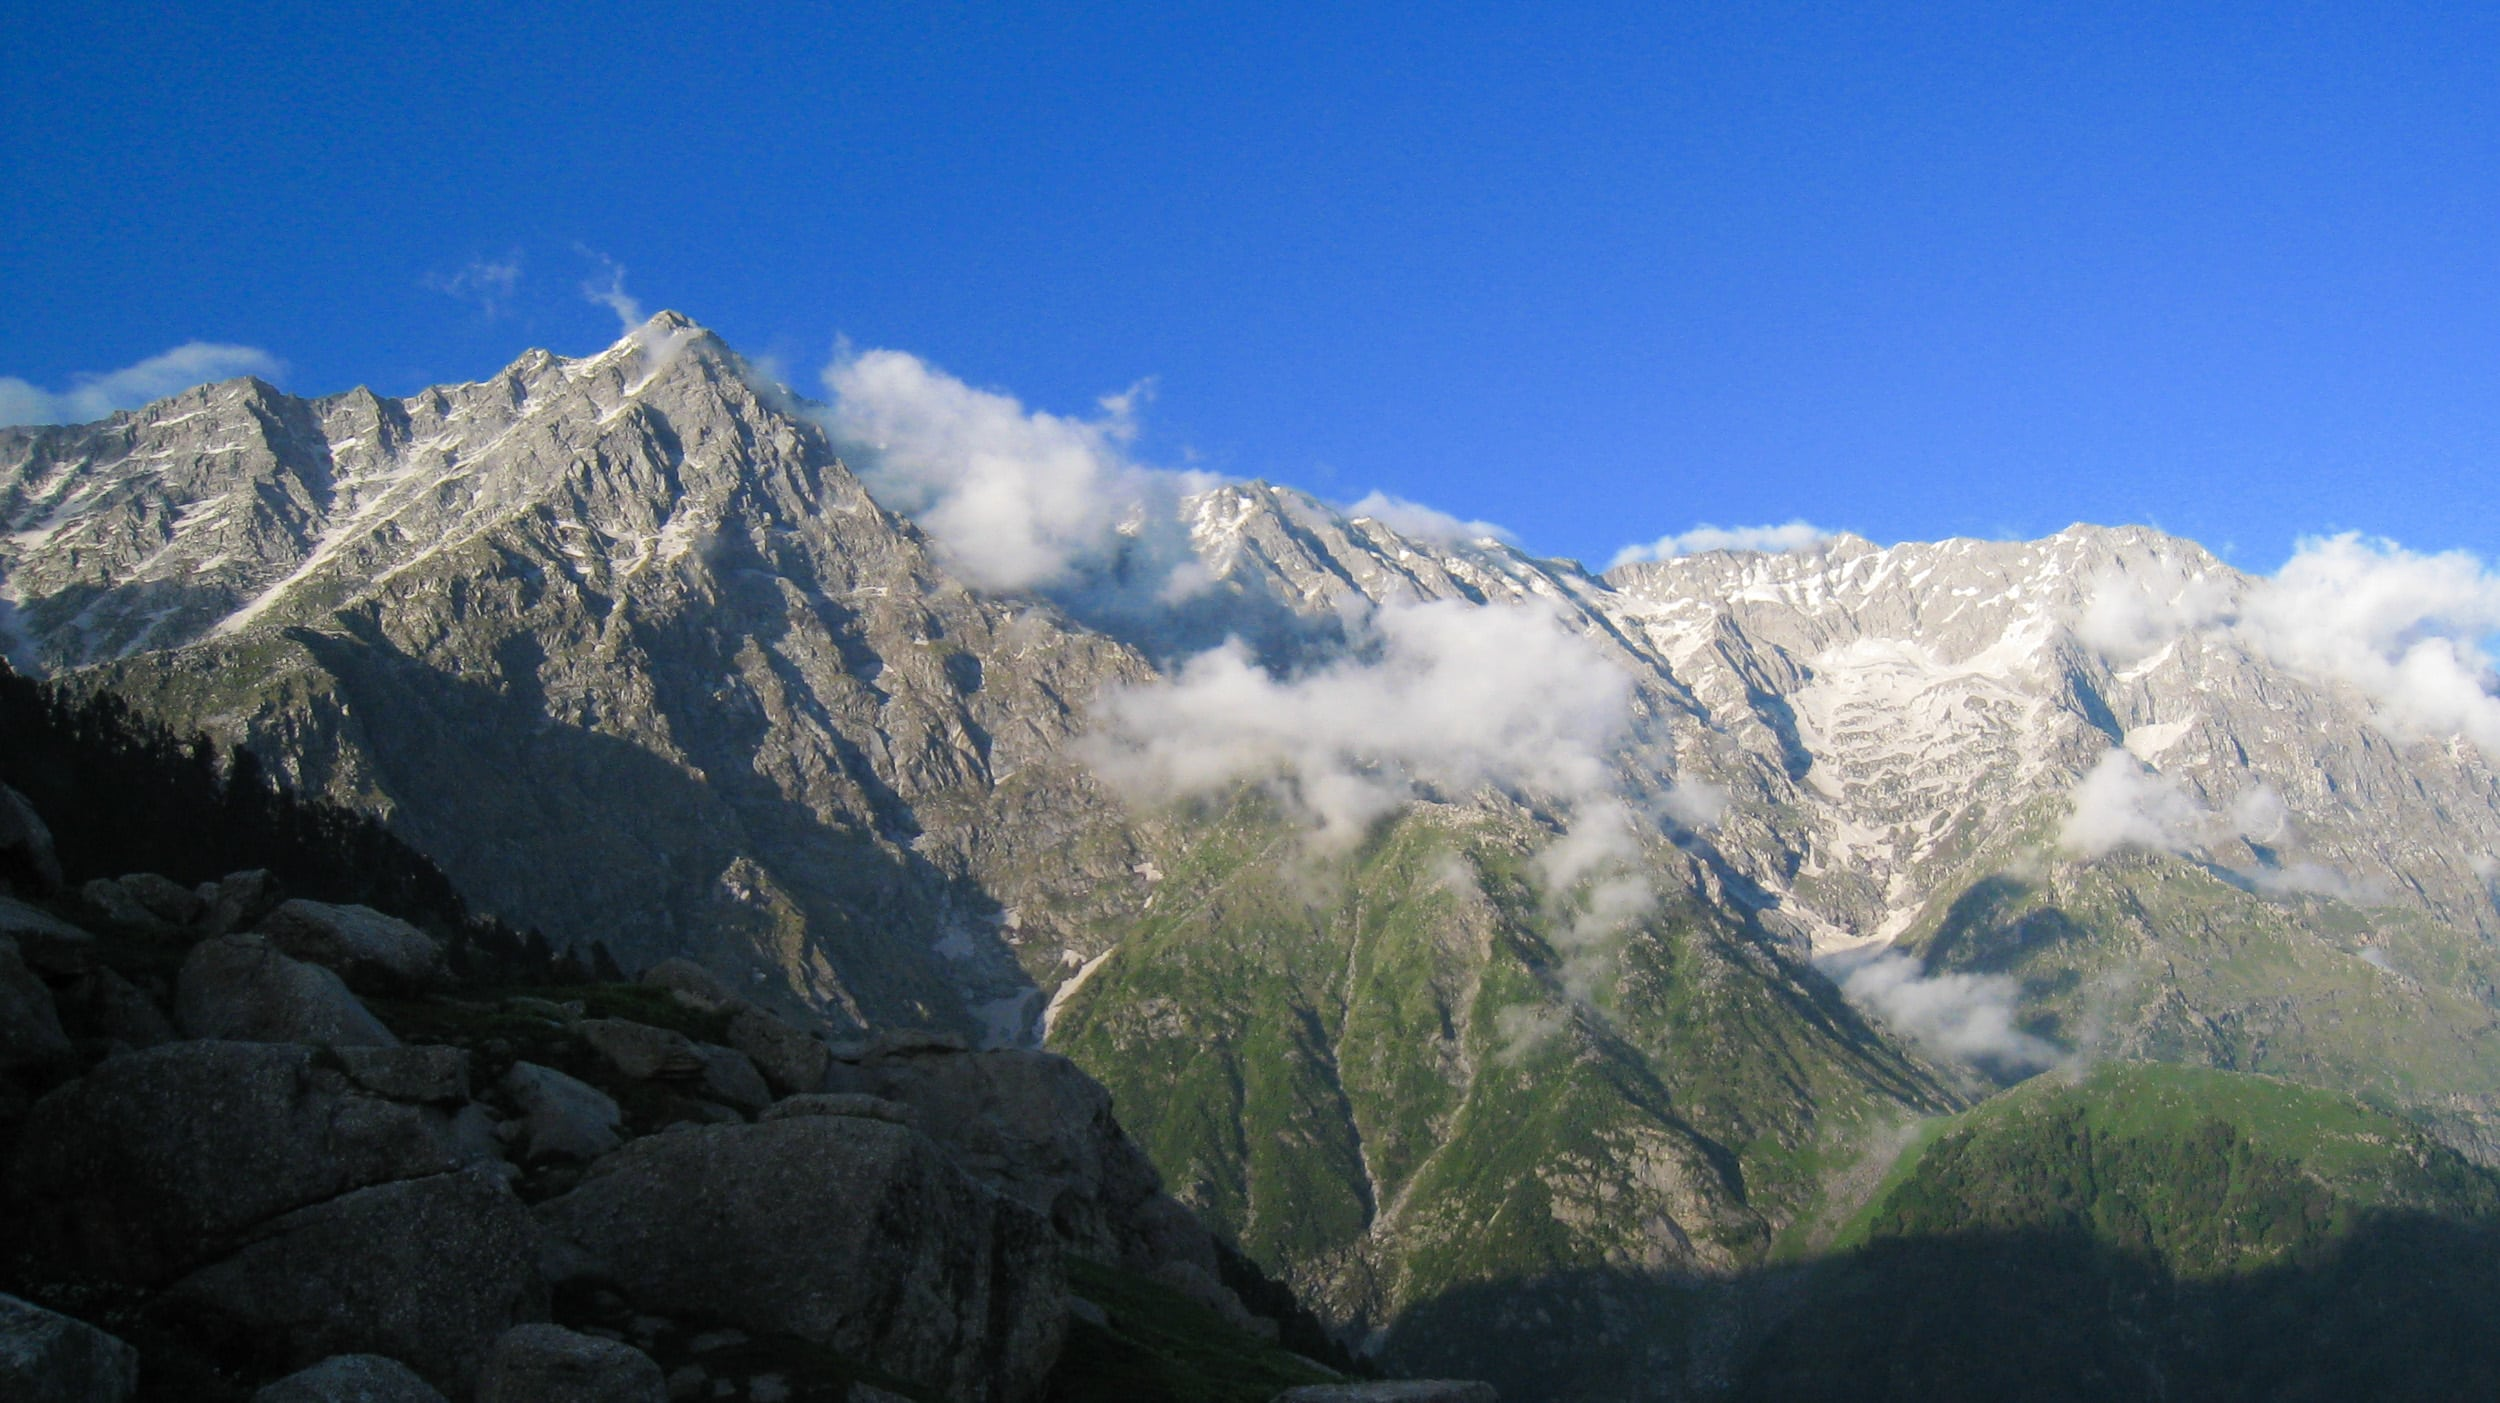 Indrahar Pass (left of the peak) in northern India